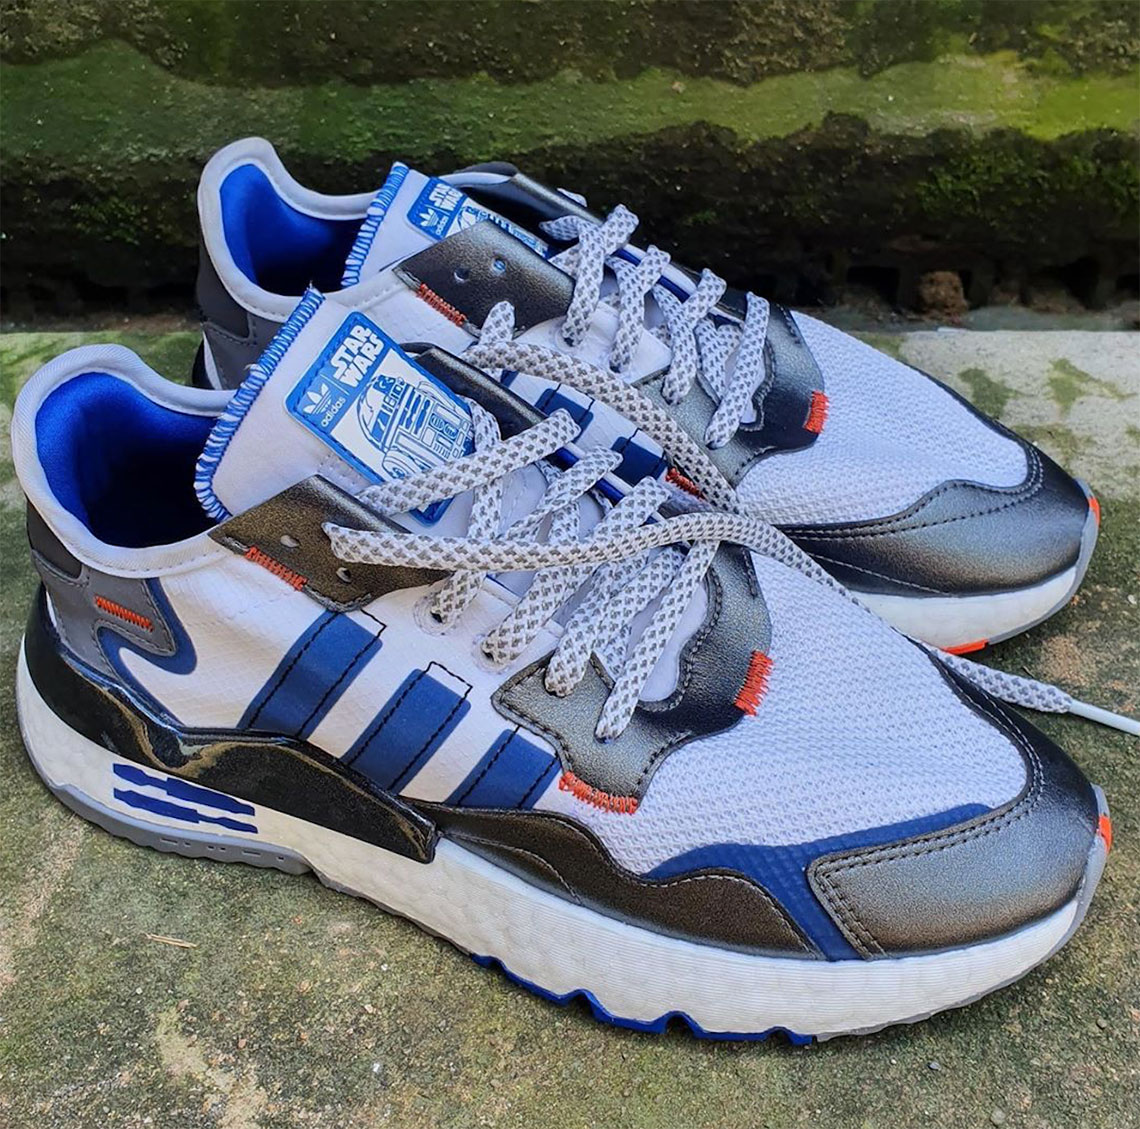 adidas r2d2 51% di sconto sglabs.it